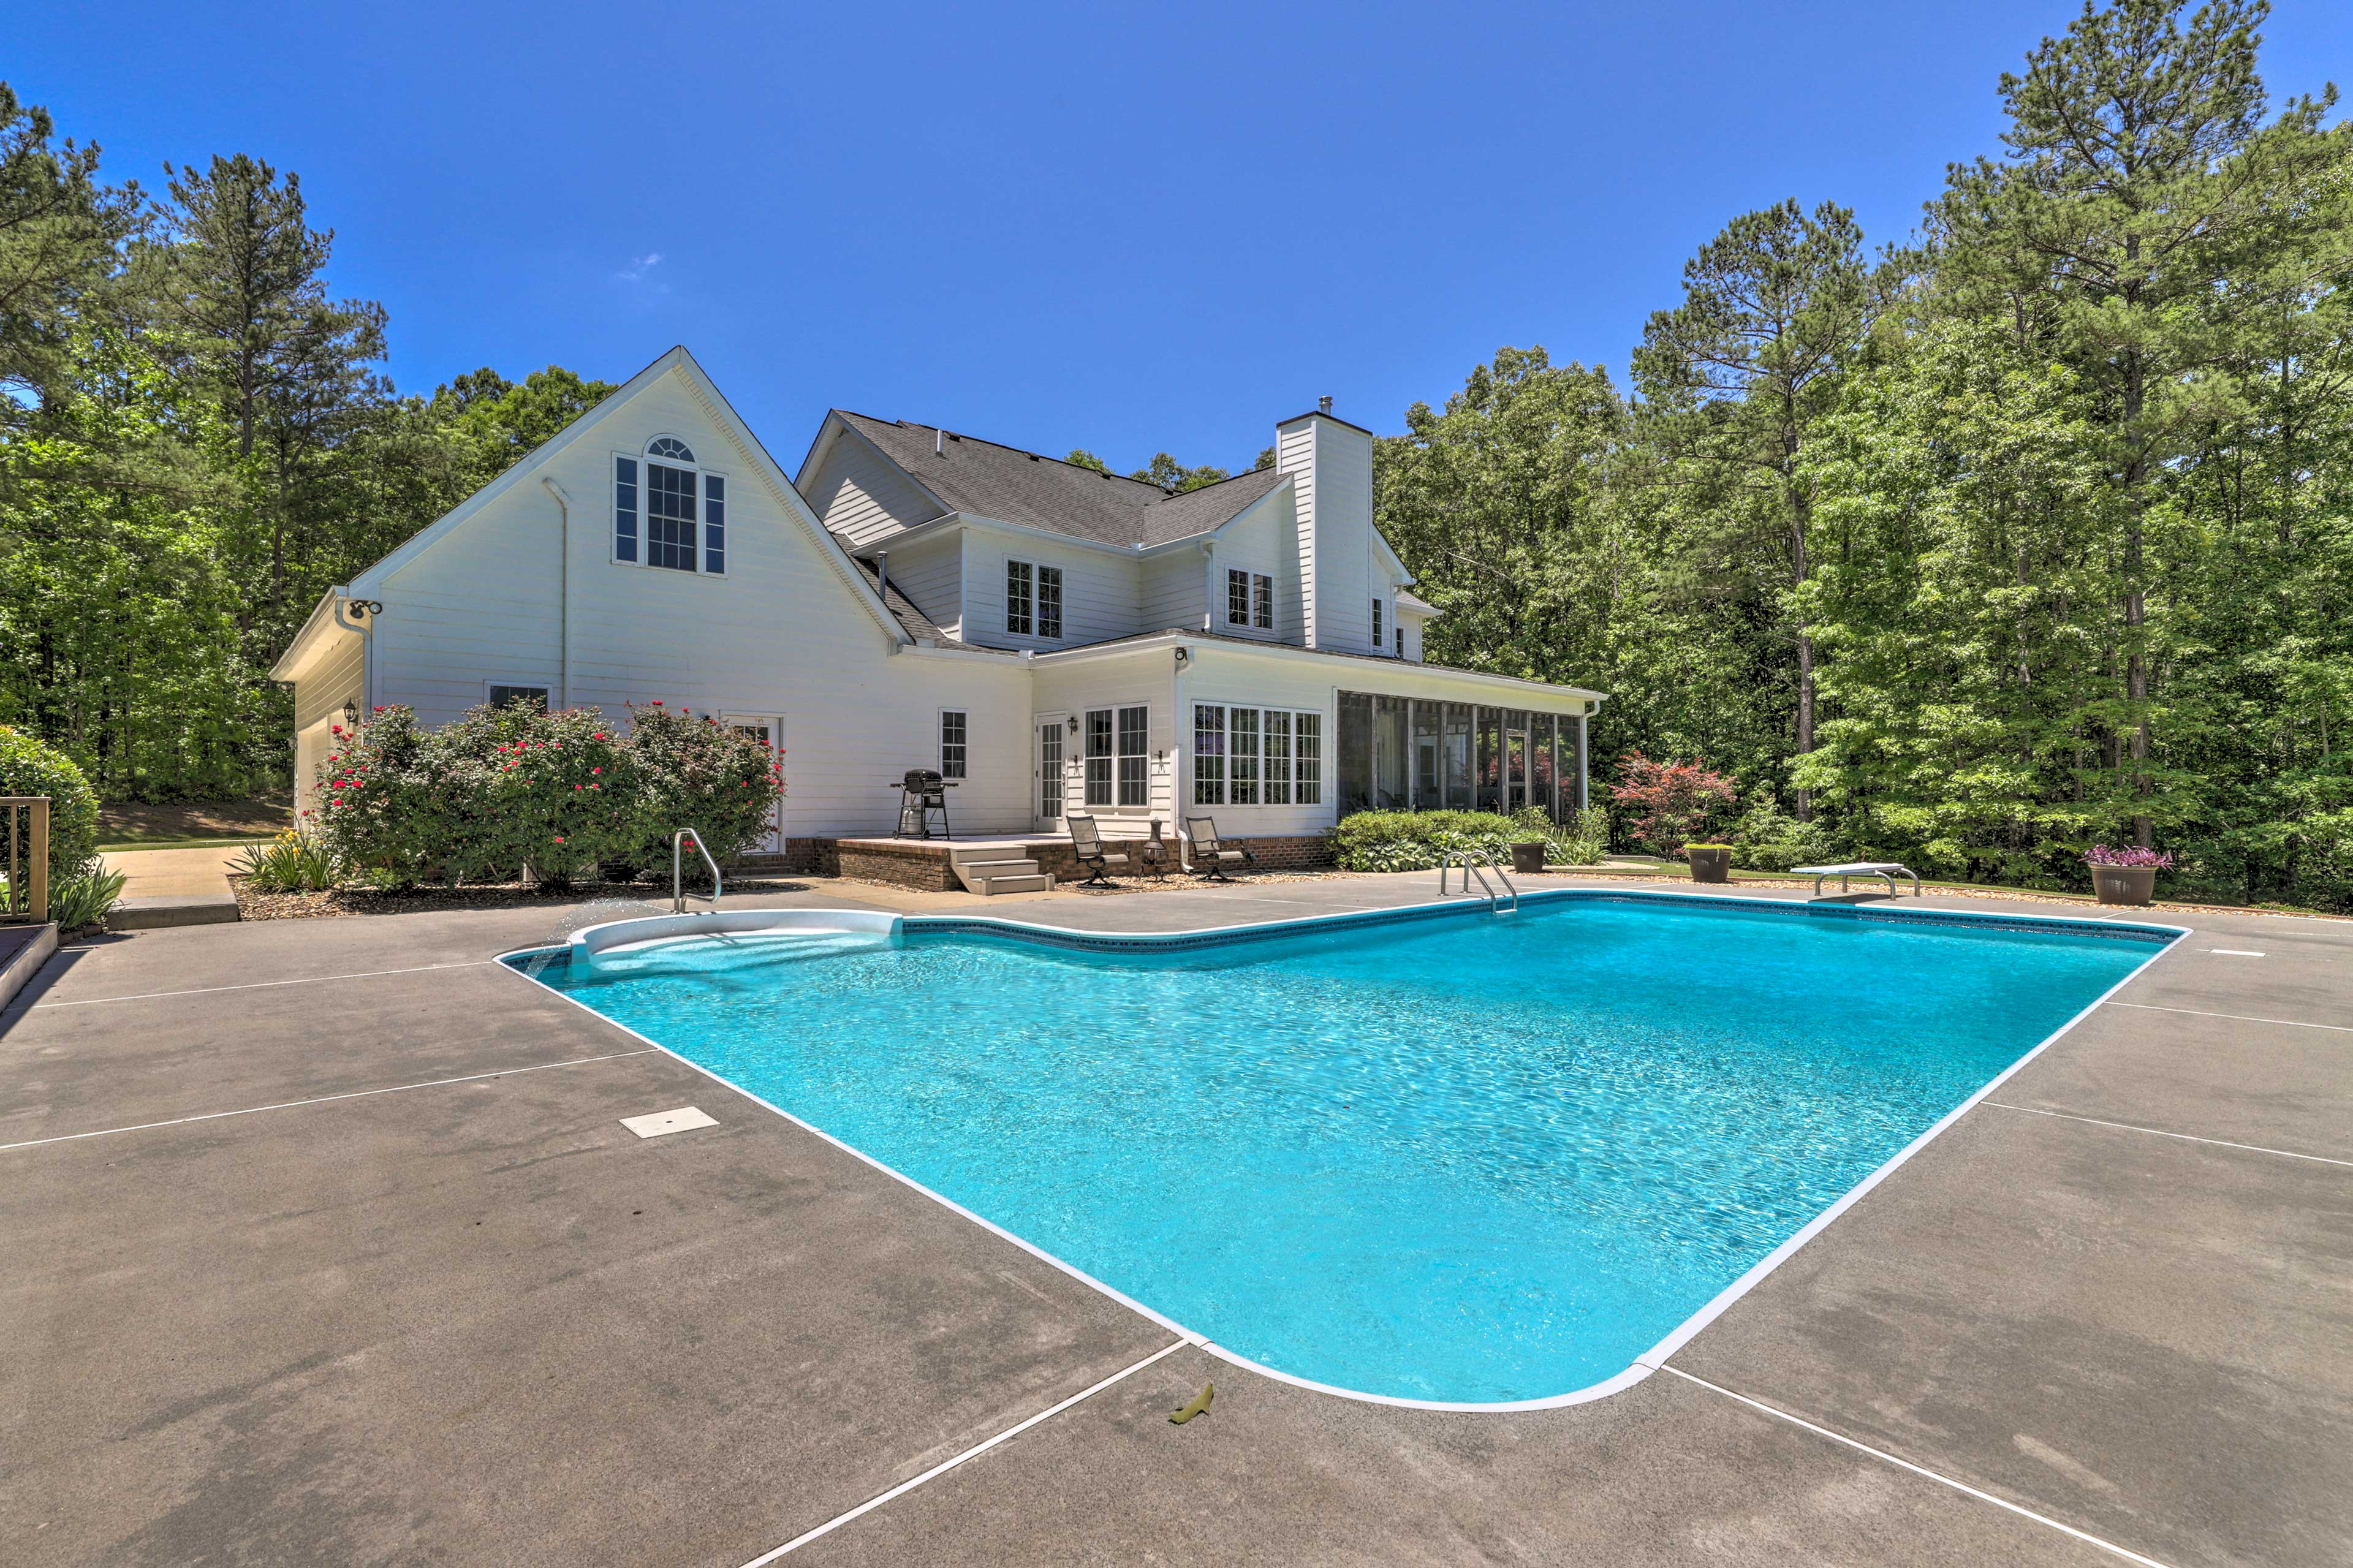 This beautiful Muscadine home offers something for everyone plus a private pool!